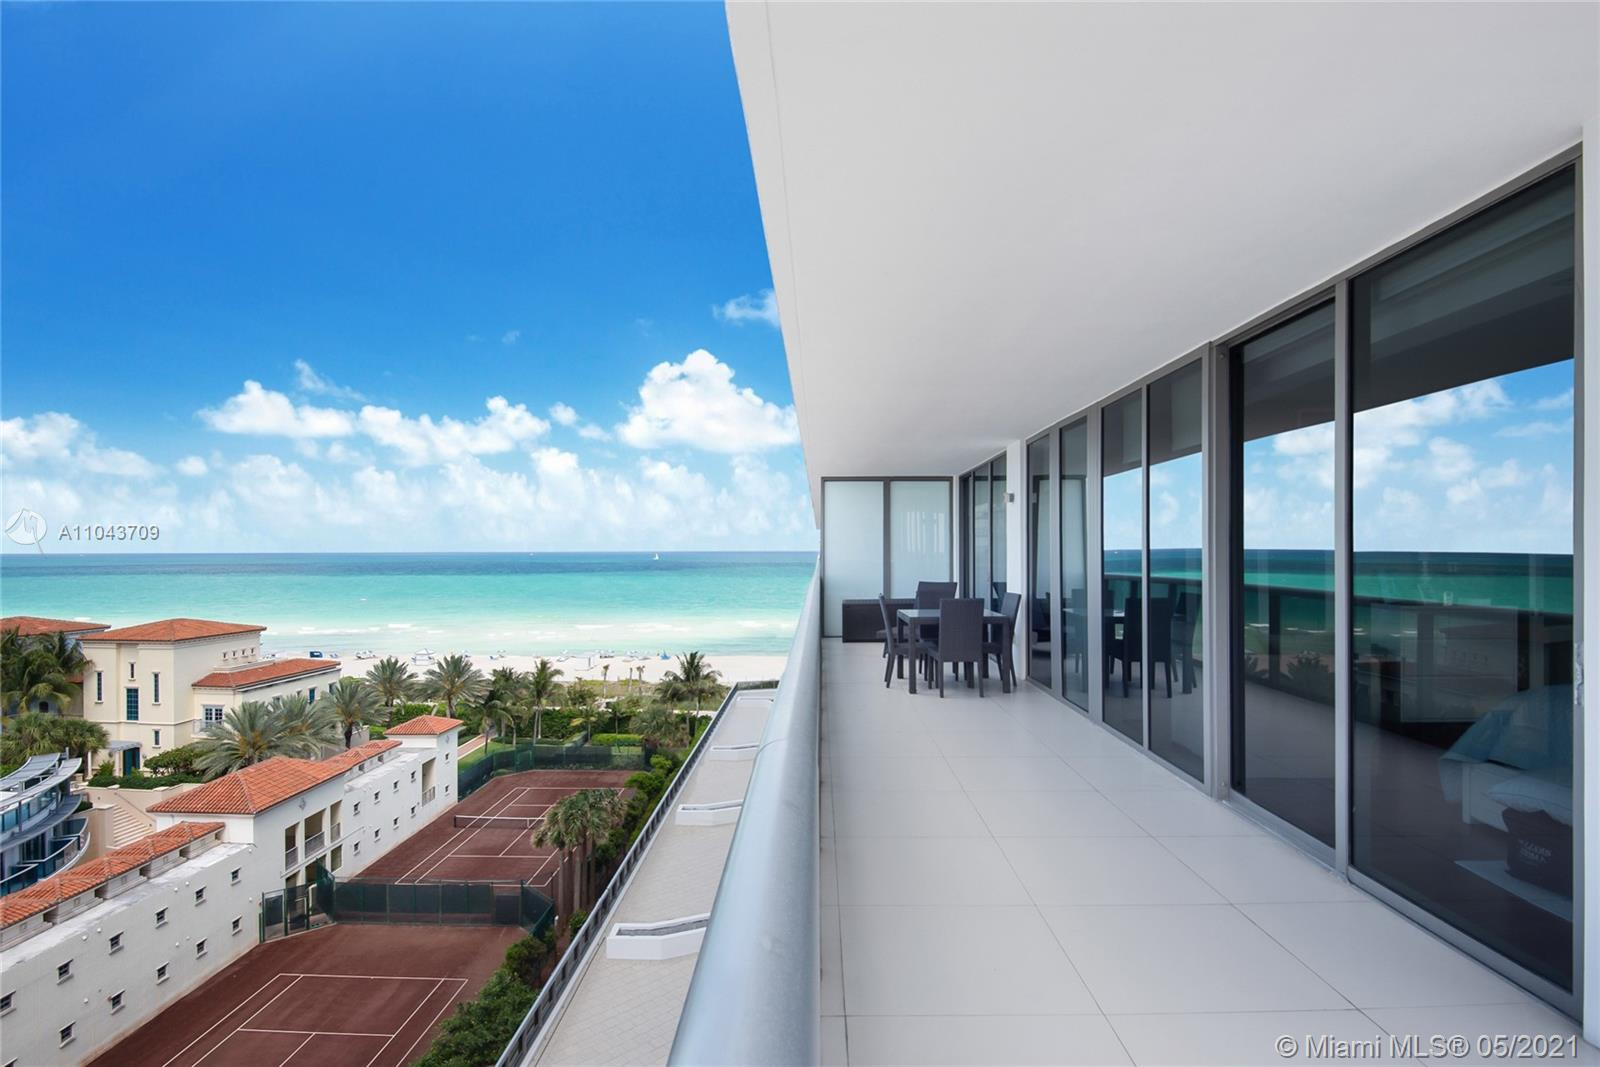 Spectacular corner unit, 2 bed 2.5 bath with amazing ocean and city views and a wraparound balcony ready to entertain. Unit has many upgrades including, custom made doors, enlarge kitchen island with quartz counter top, remote control blinds,Italian porcelain & wood floors, extra lighting, and built-in closets. Impeccably maintained and with an incredible floor plan this unit has it all. Perfect location in the exclusive MEI condo with 24 hour valet, beach access & service, sea level pool, state of the art gym and concierge services.